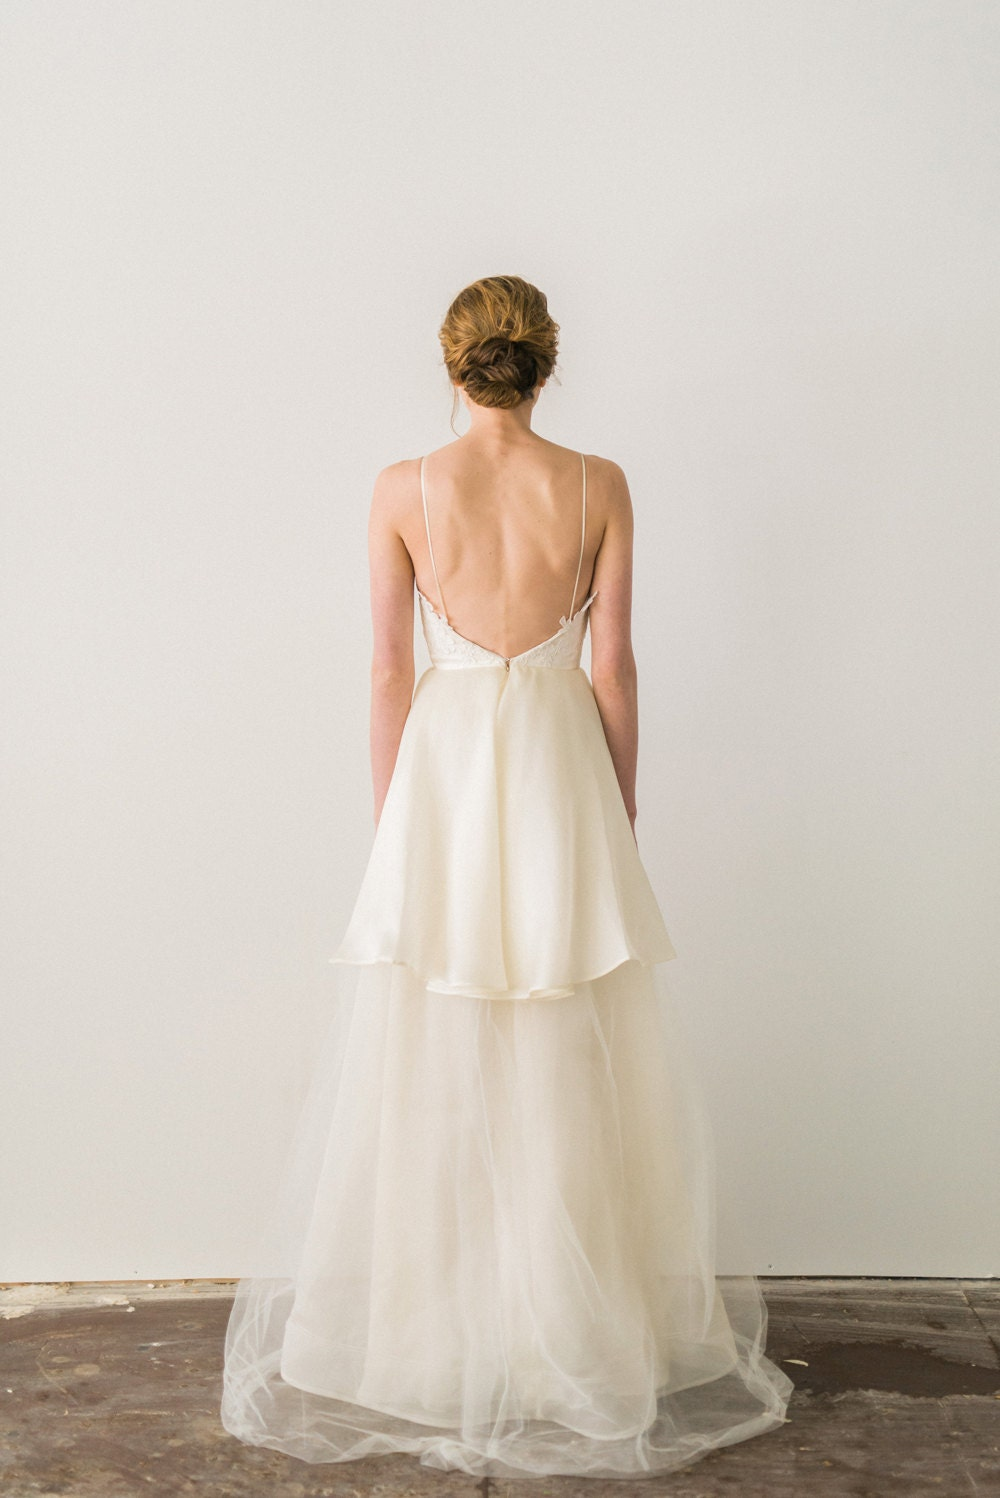 Backless wedding dress lace and tulle wedding dress ivory for Light blue wedding dress meaning